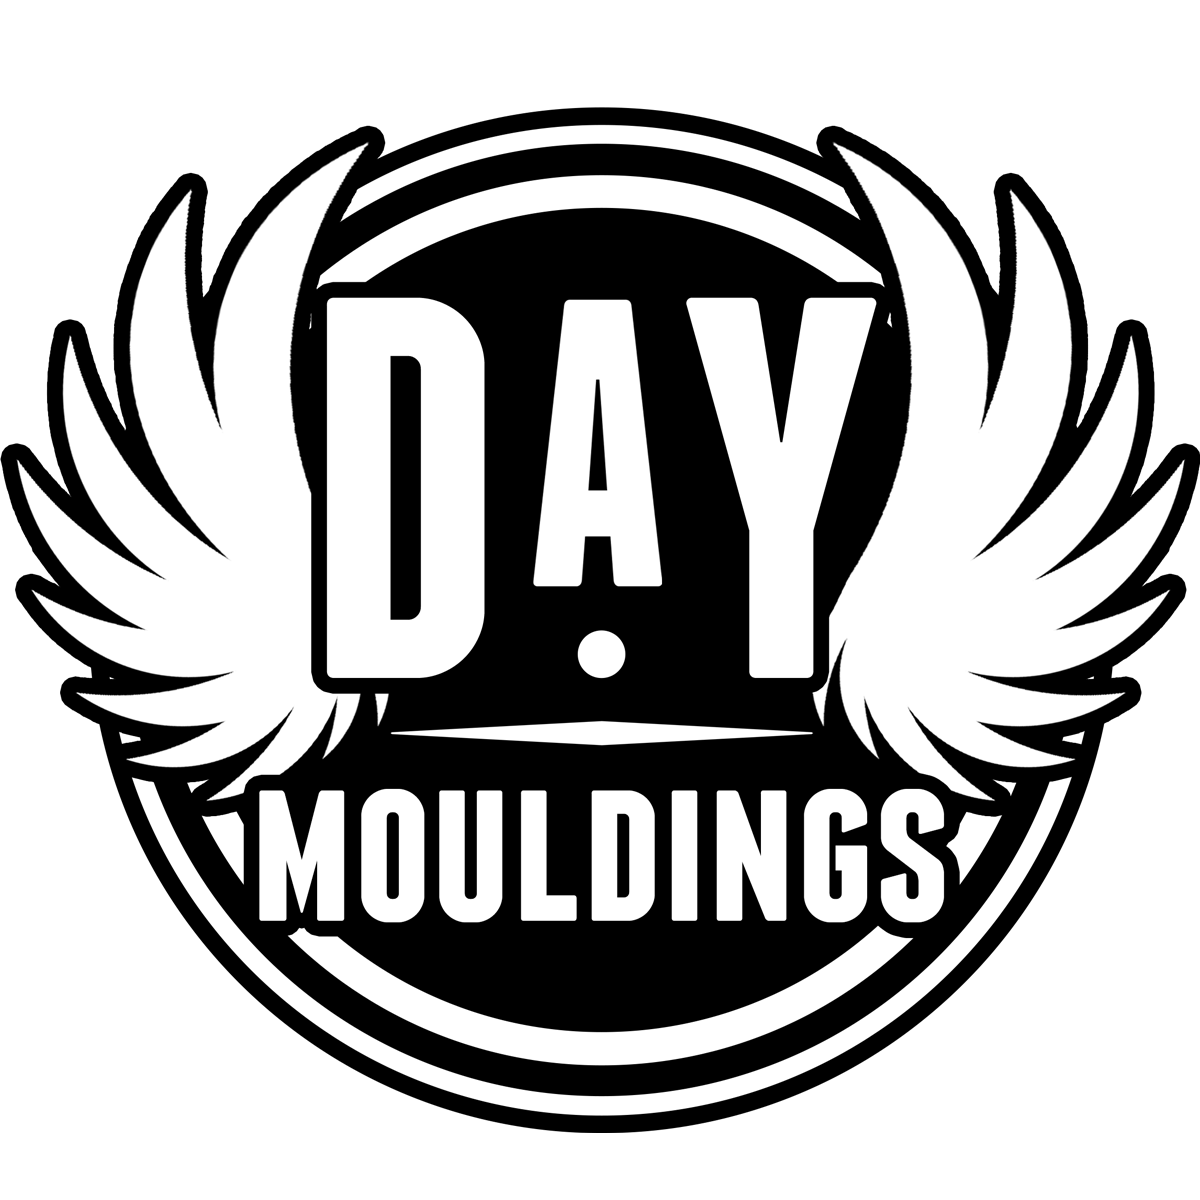 Day Mouldings - Producing the best fibreglass Beetle parts that money can buy.